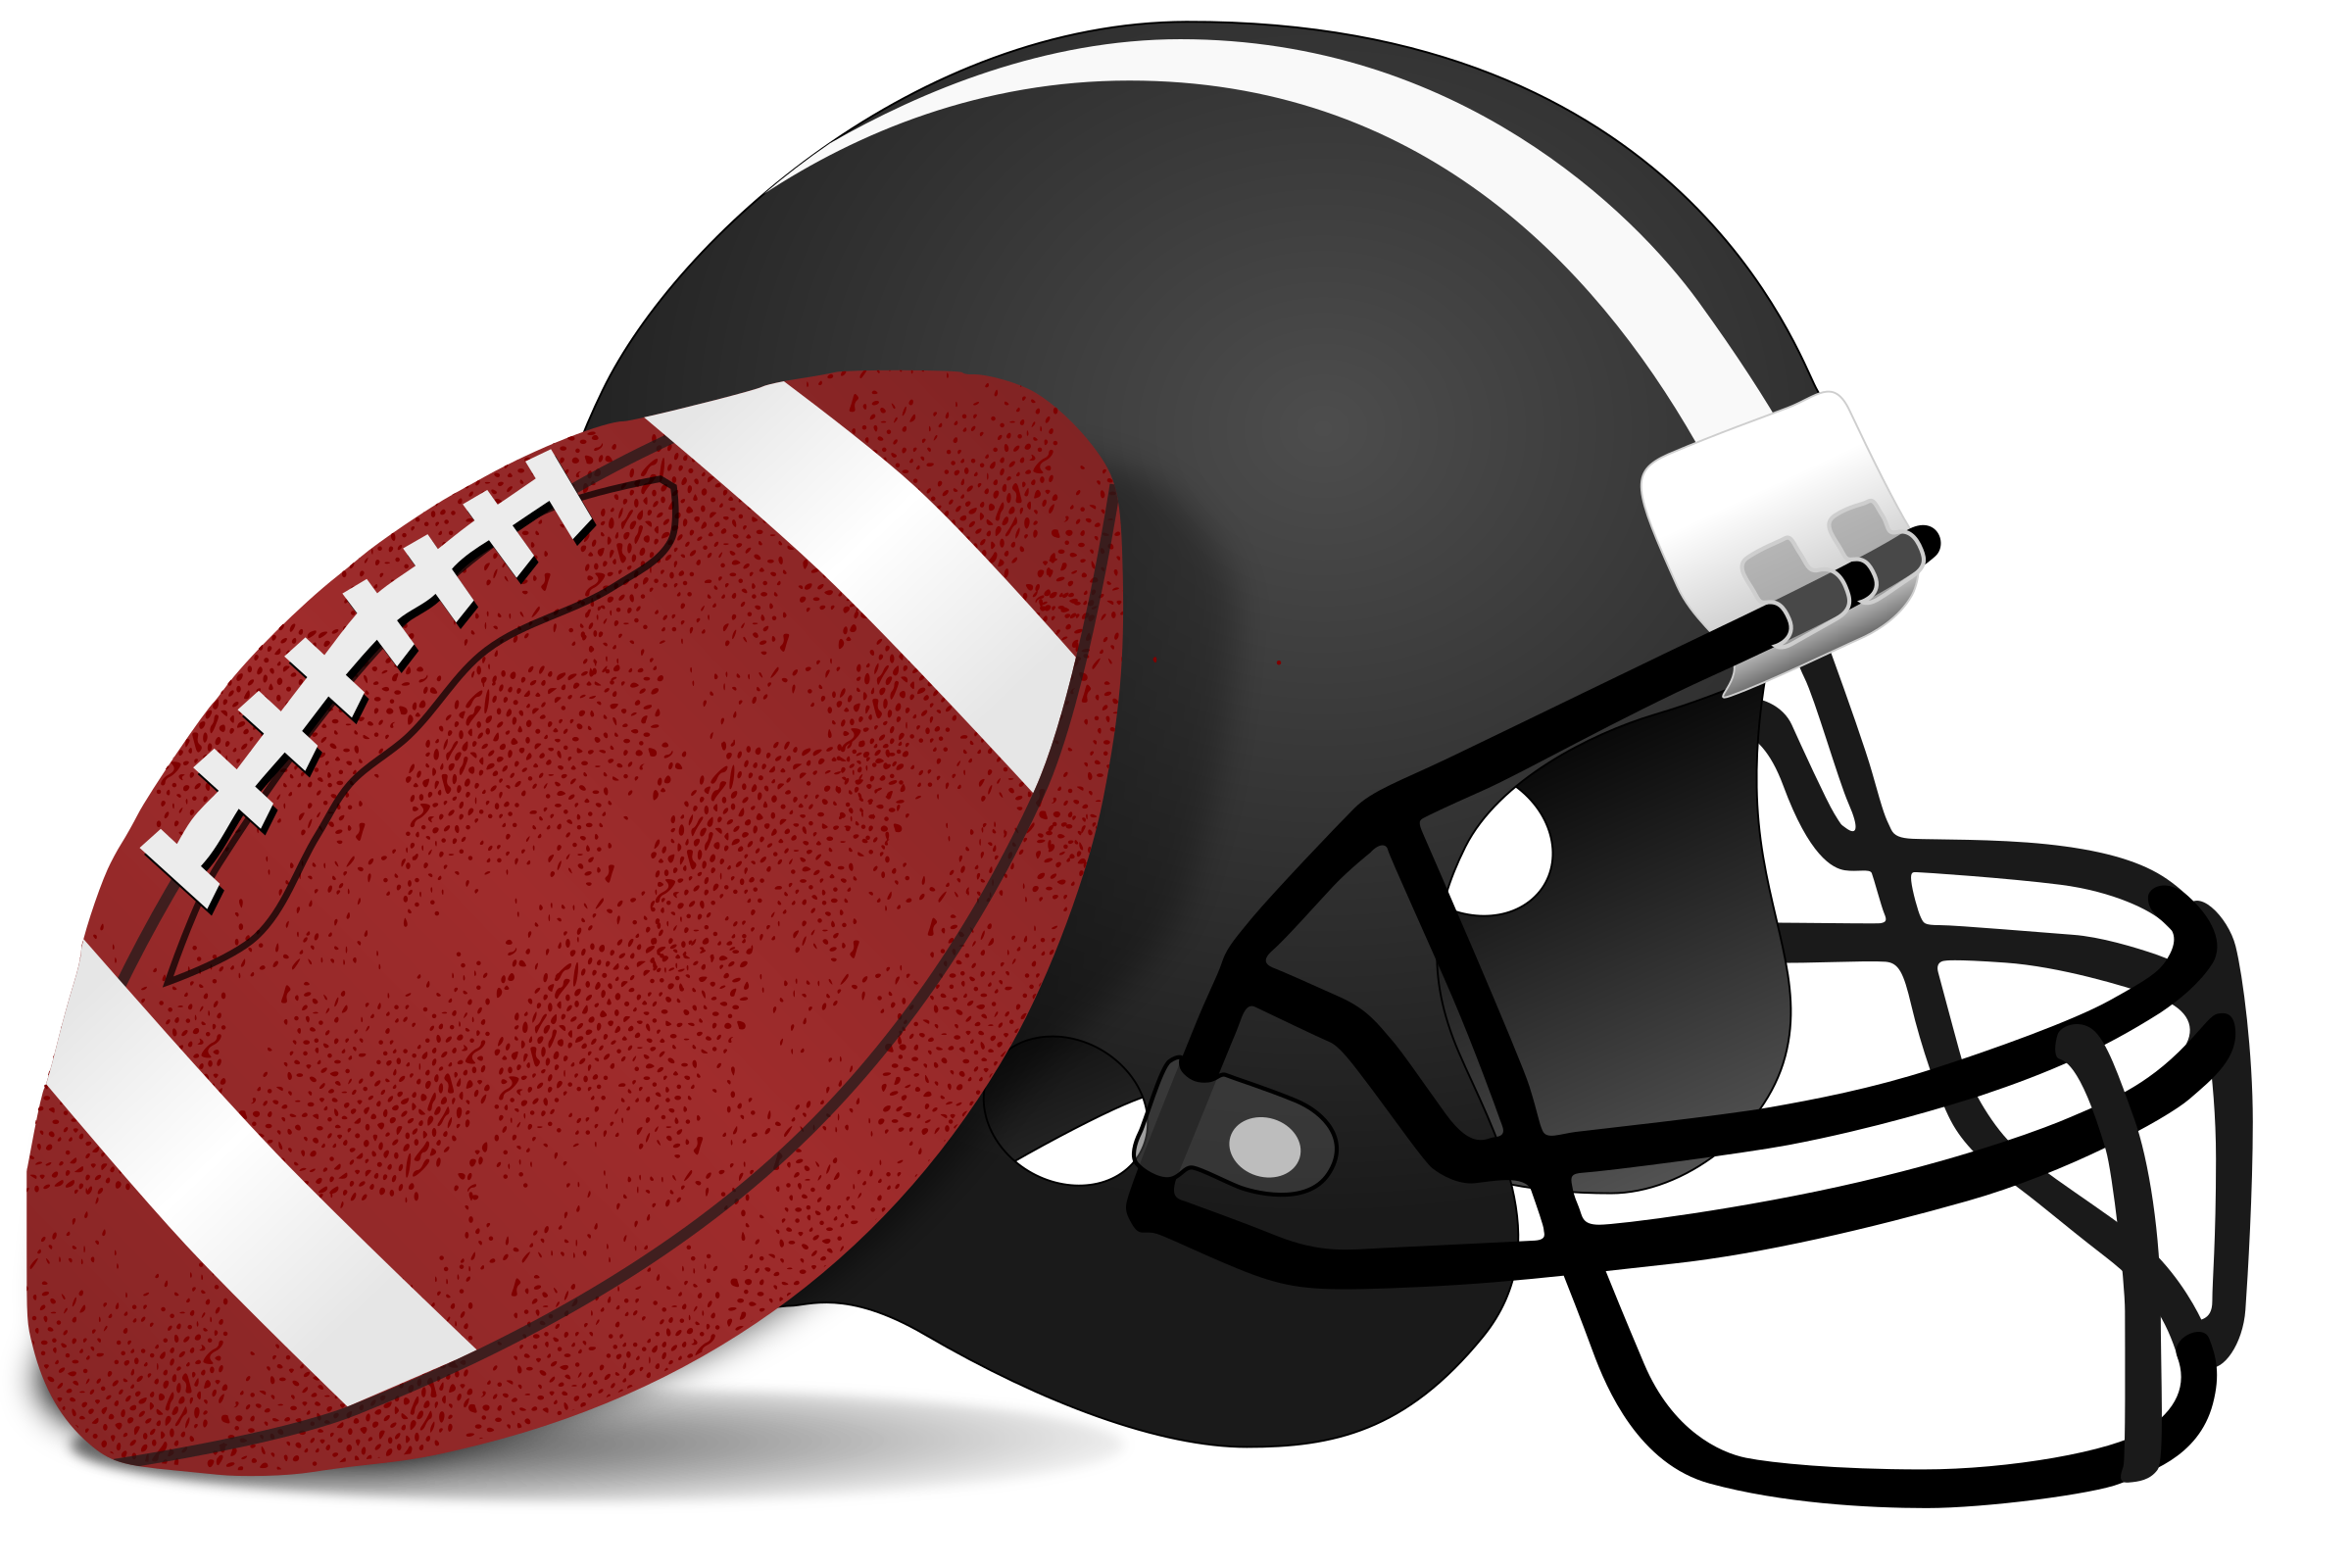 Nfl Football Ball Clip Art